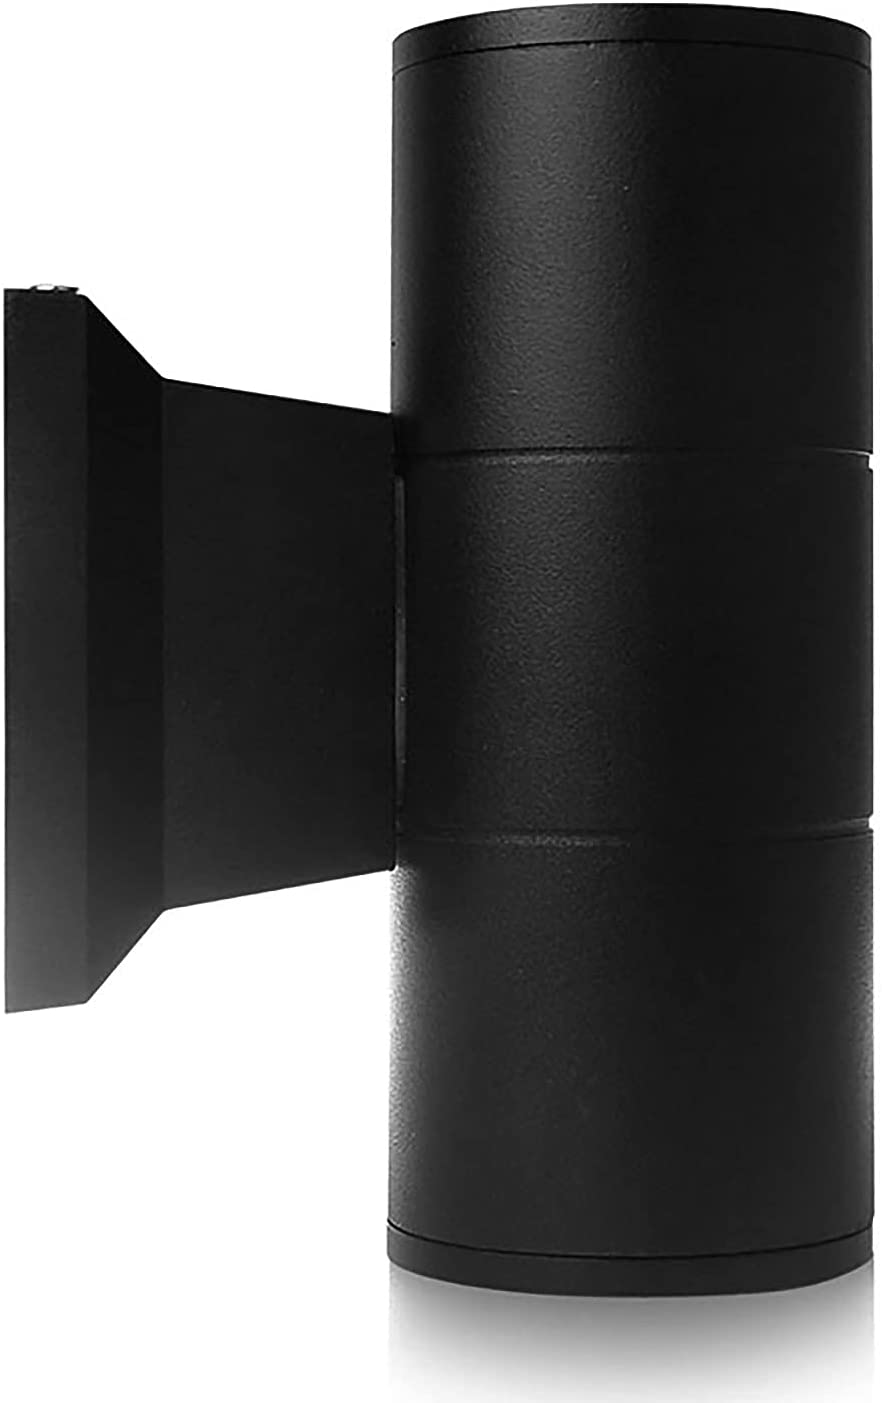 Outdoor Wall Virginia Special price Beach Mall Lights Sunsbell 6500K and COB Down Sconce Up